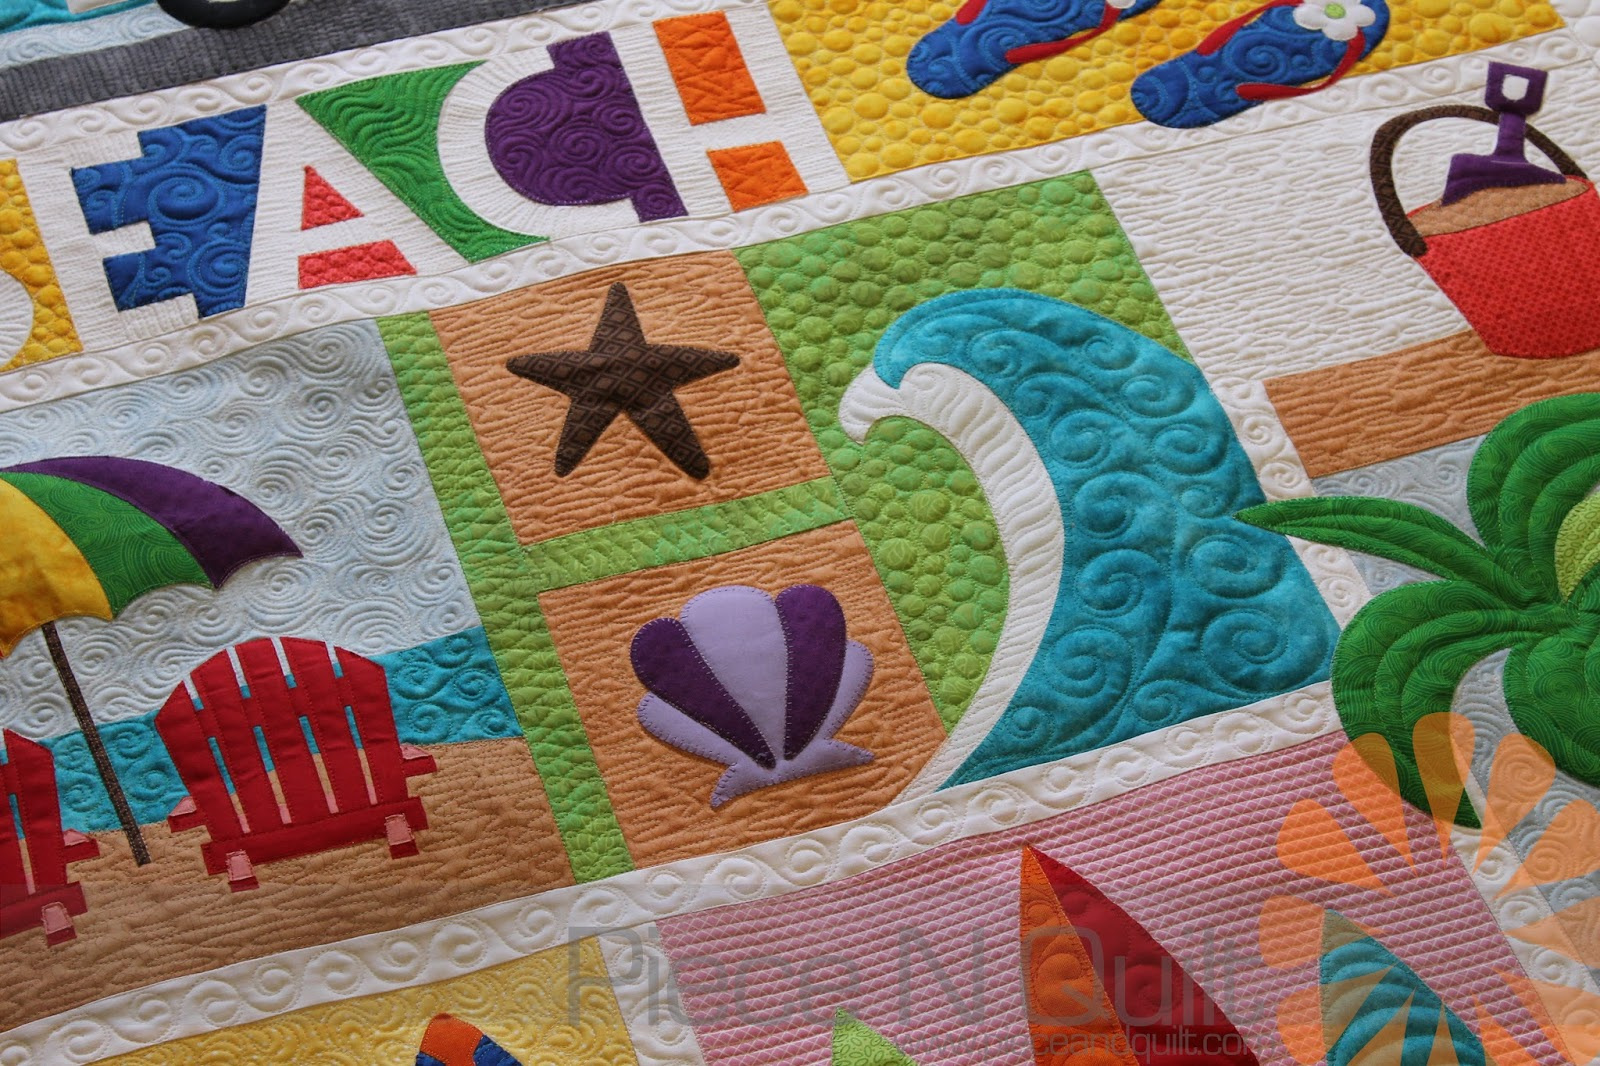 Piece N Quilt: Beach Break - Custom Machine Quilting by Natalia Bonner : beach themed quilt patterns - Adamdwight.com